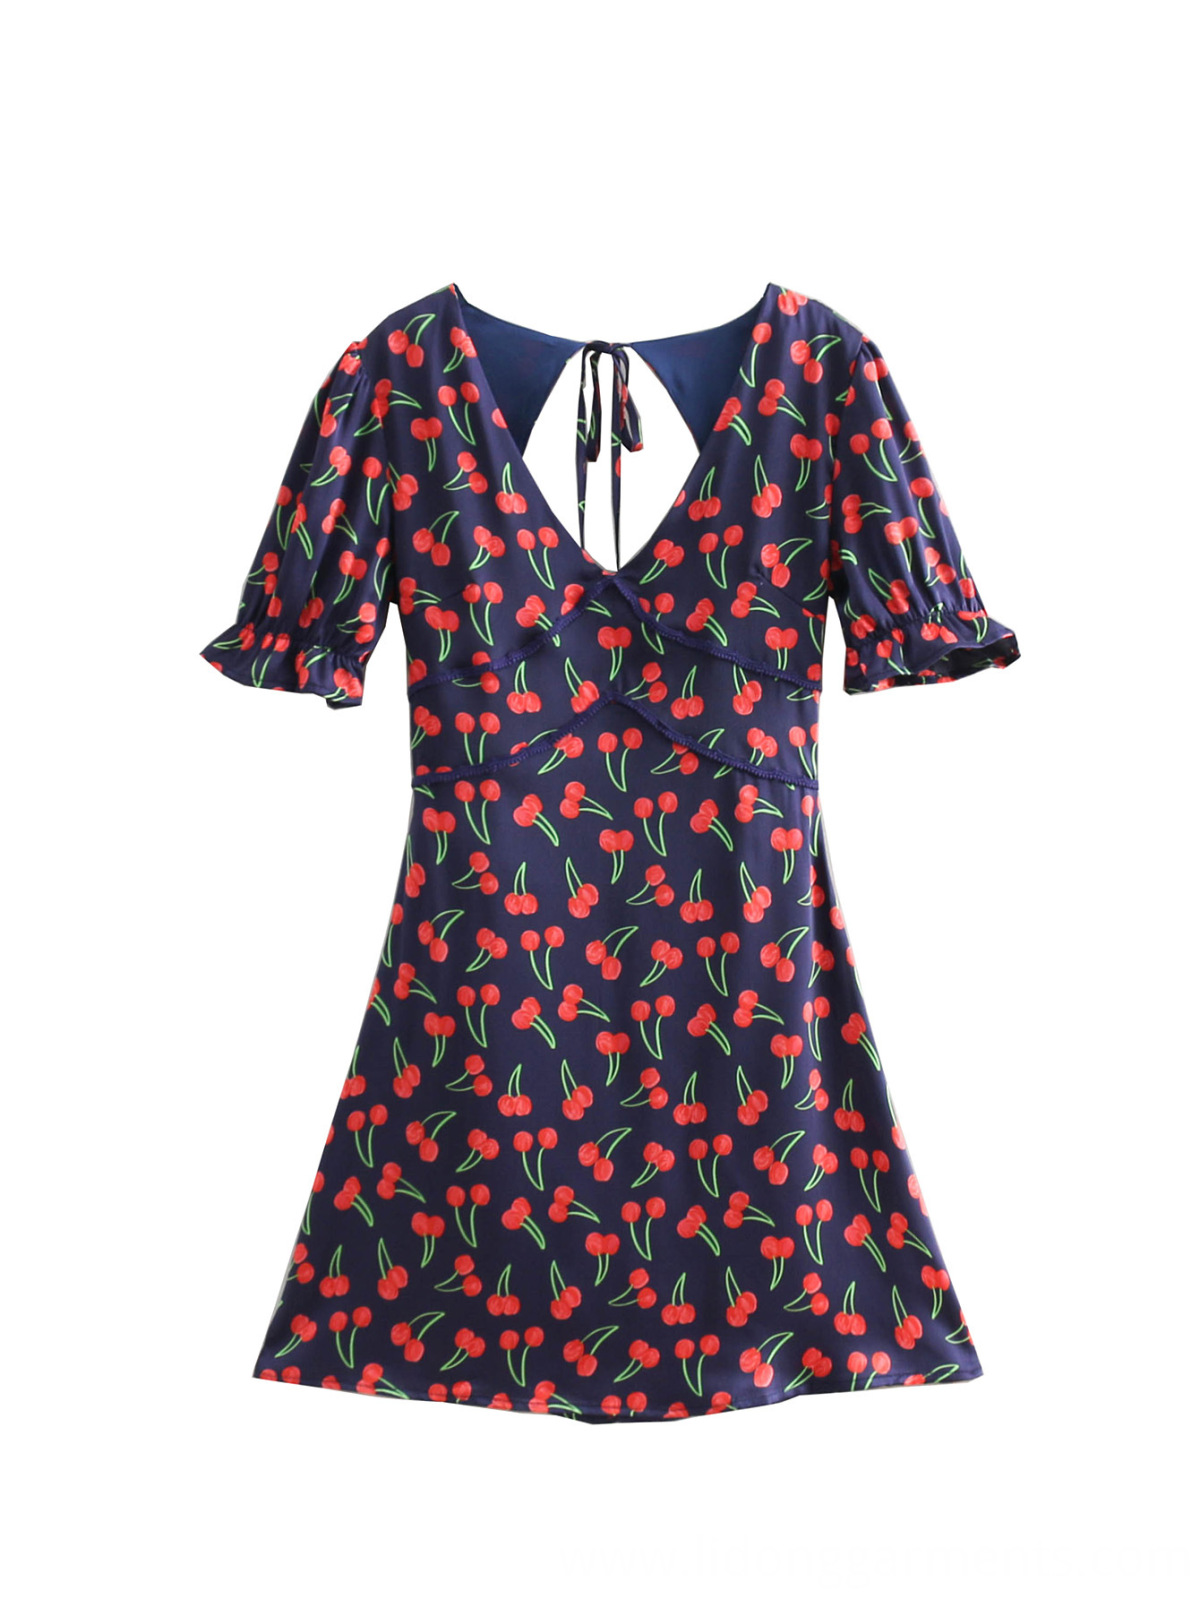 Women's Causal Cherry Printed Dress